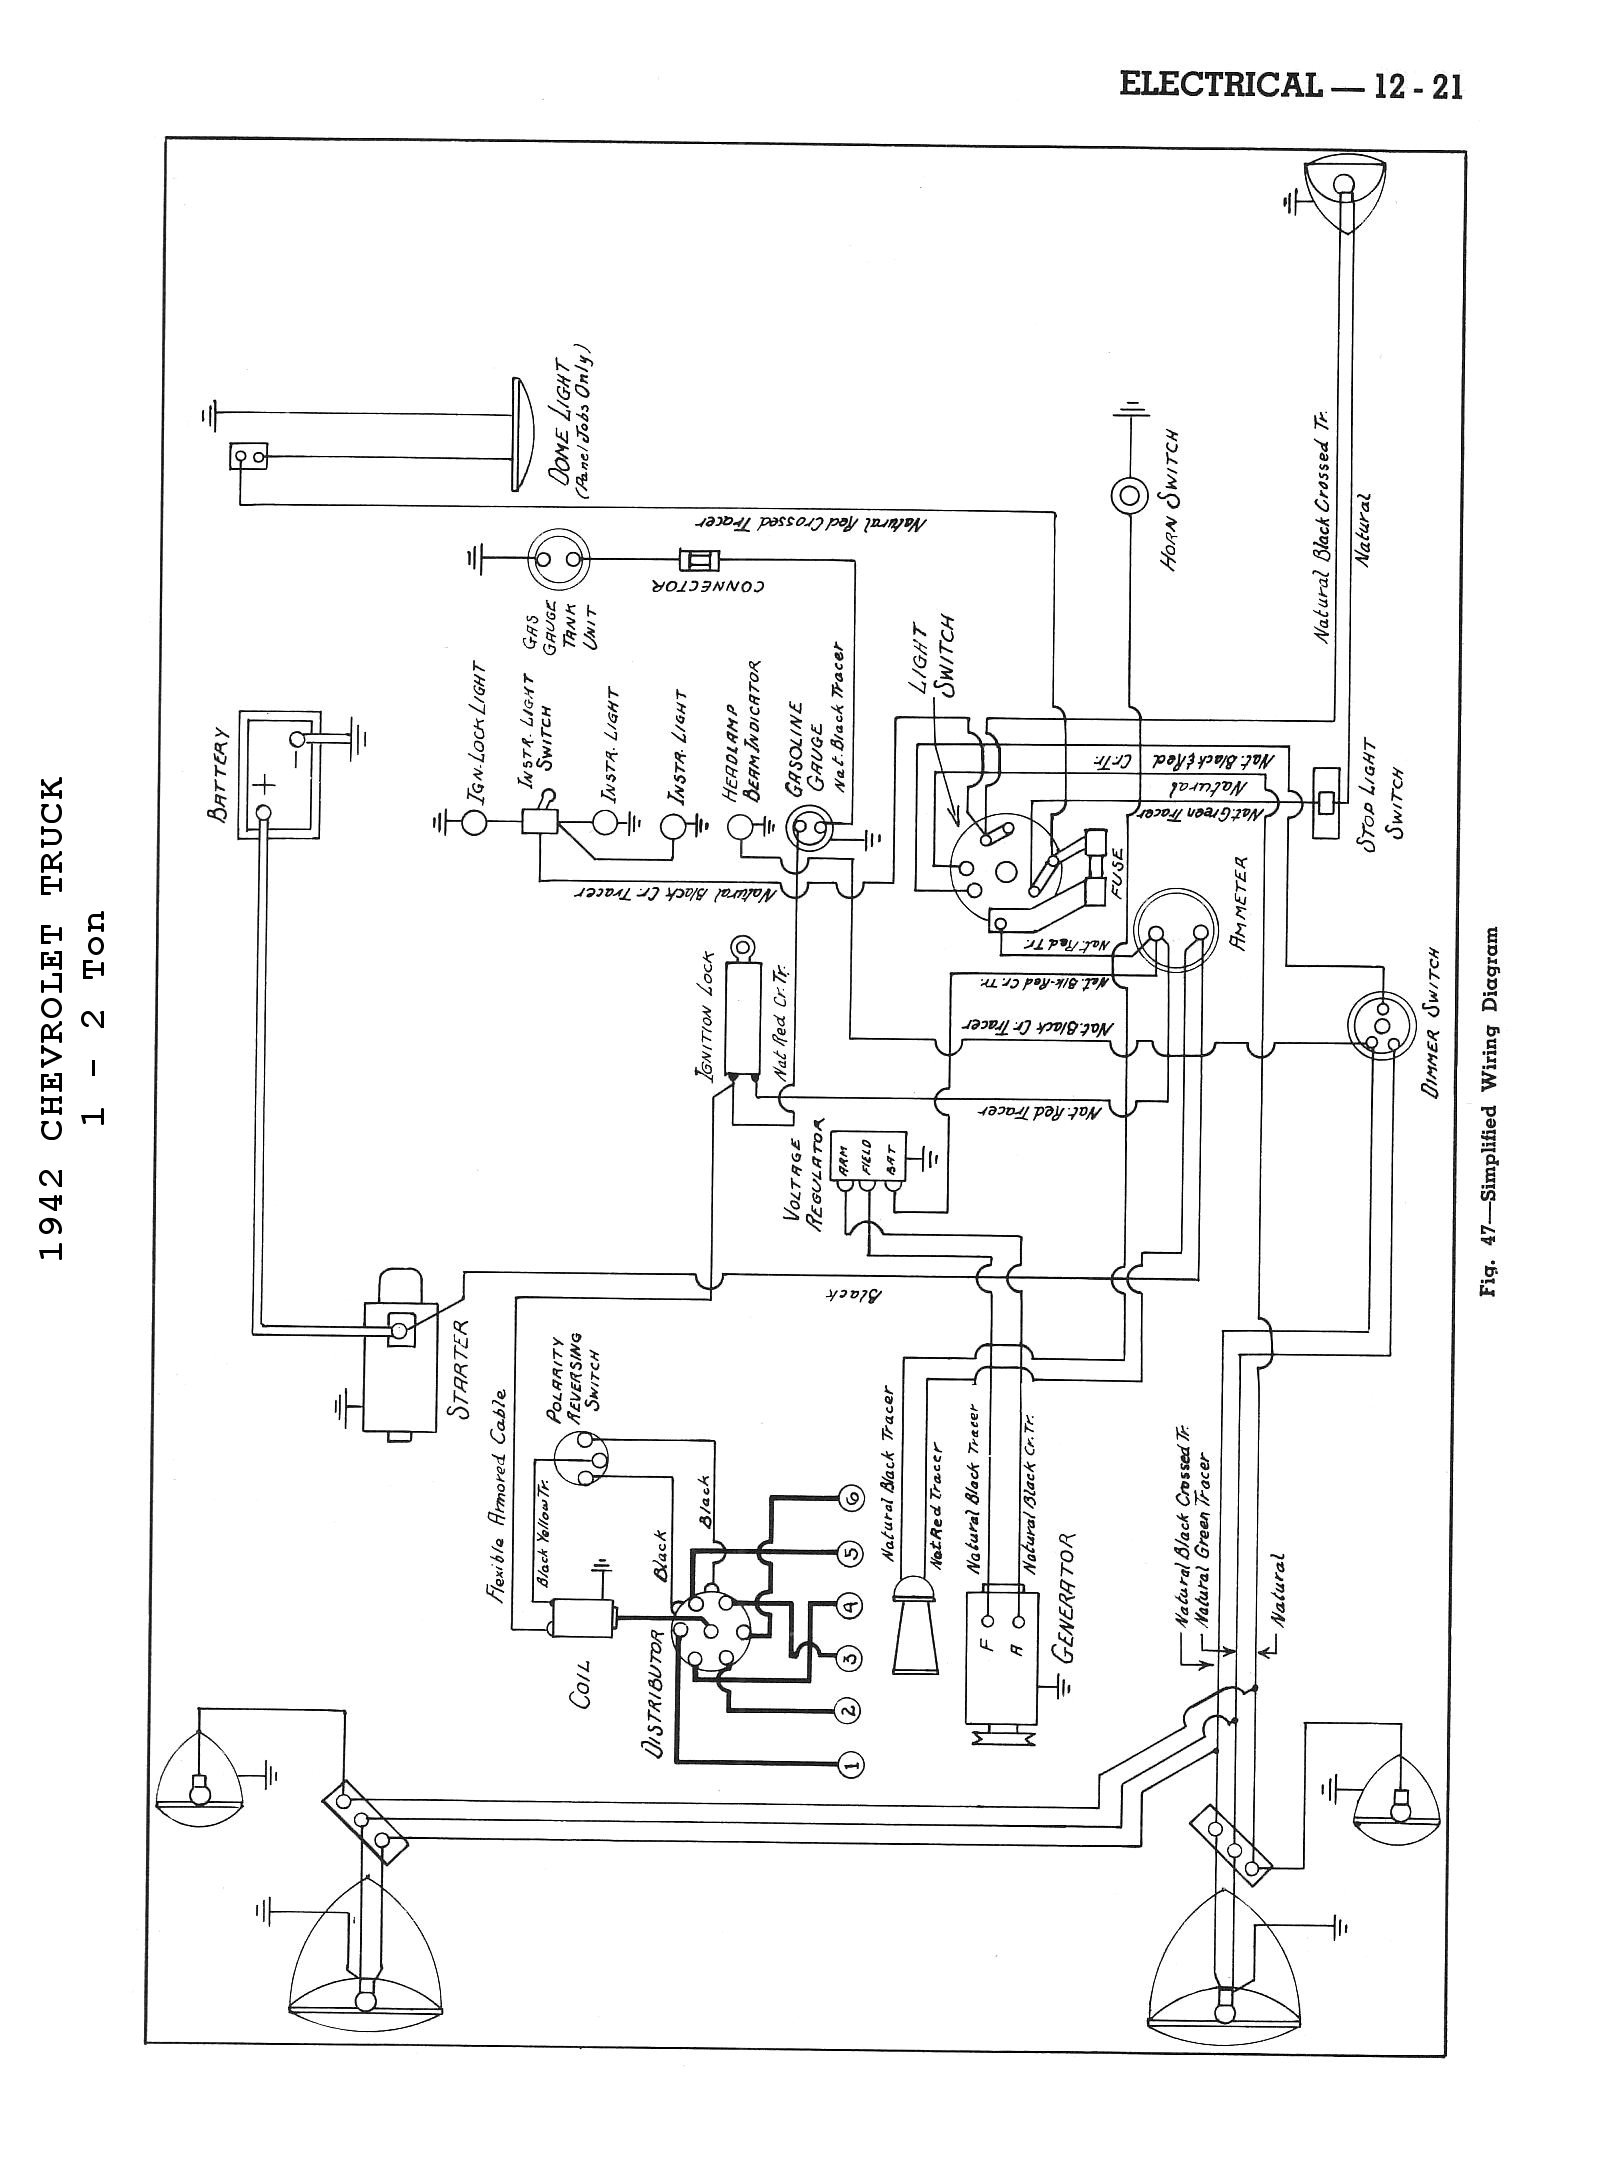 1937 International Truck Wiring Diagram Schematic Just Data Trucks Diagrams 1934 Dodge Harness